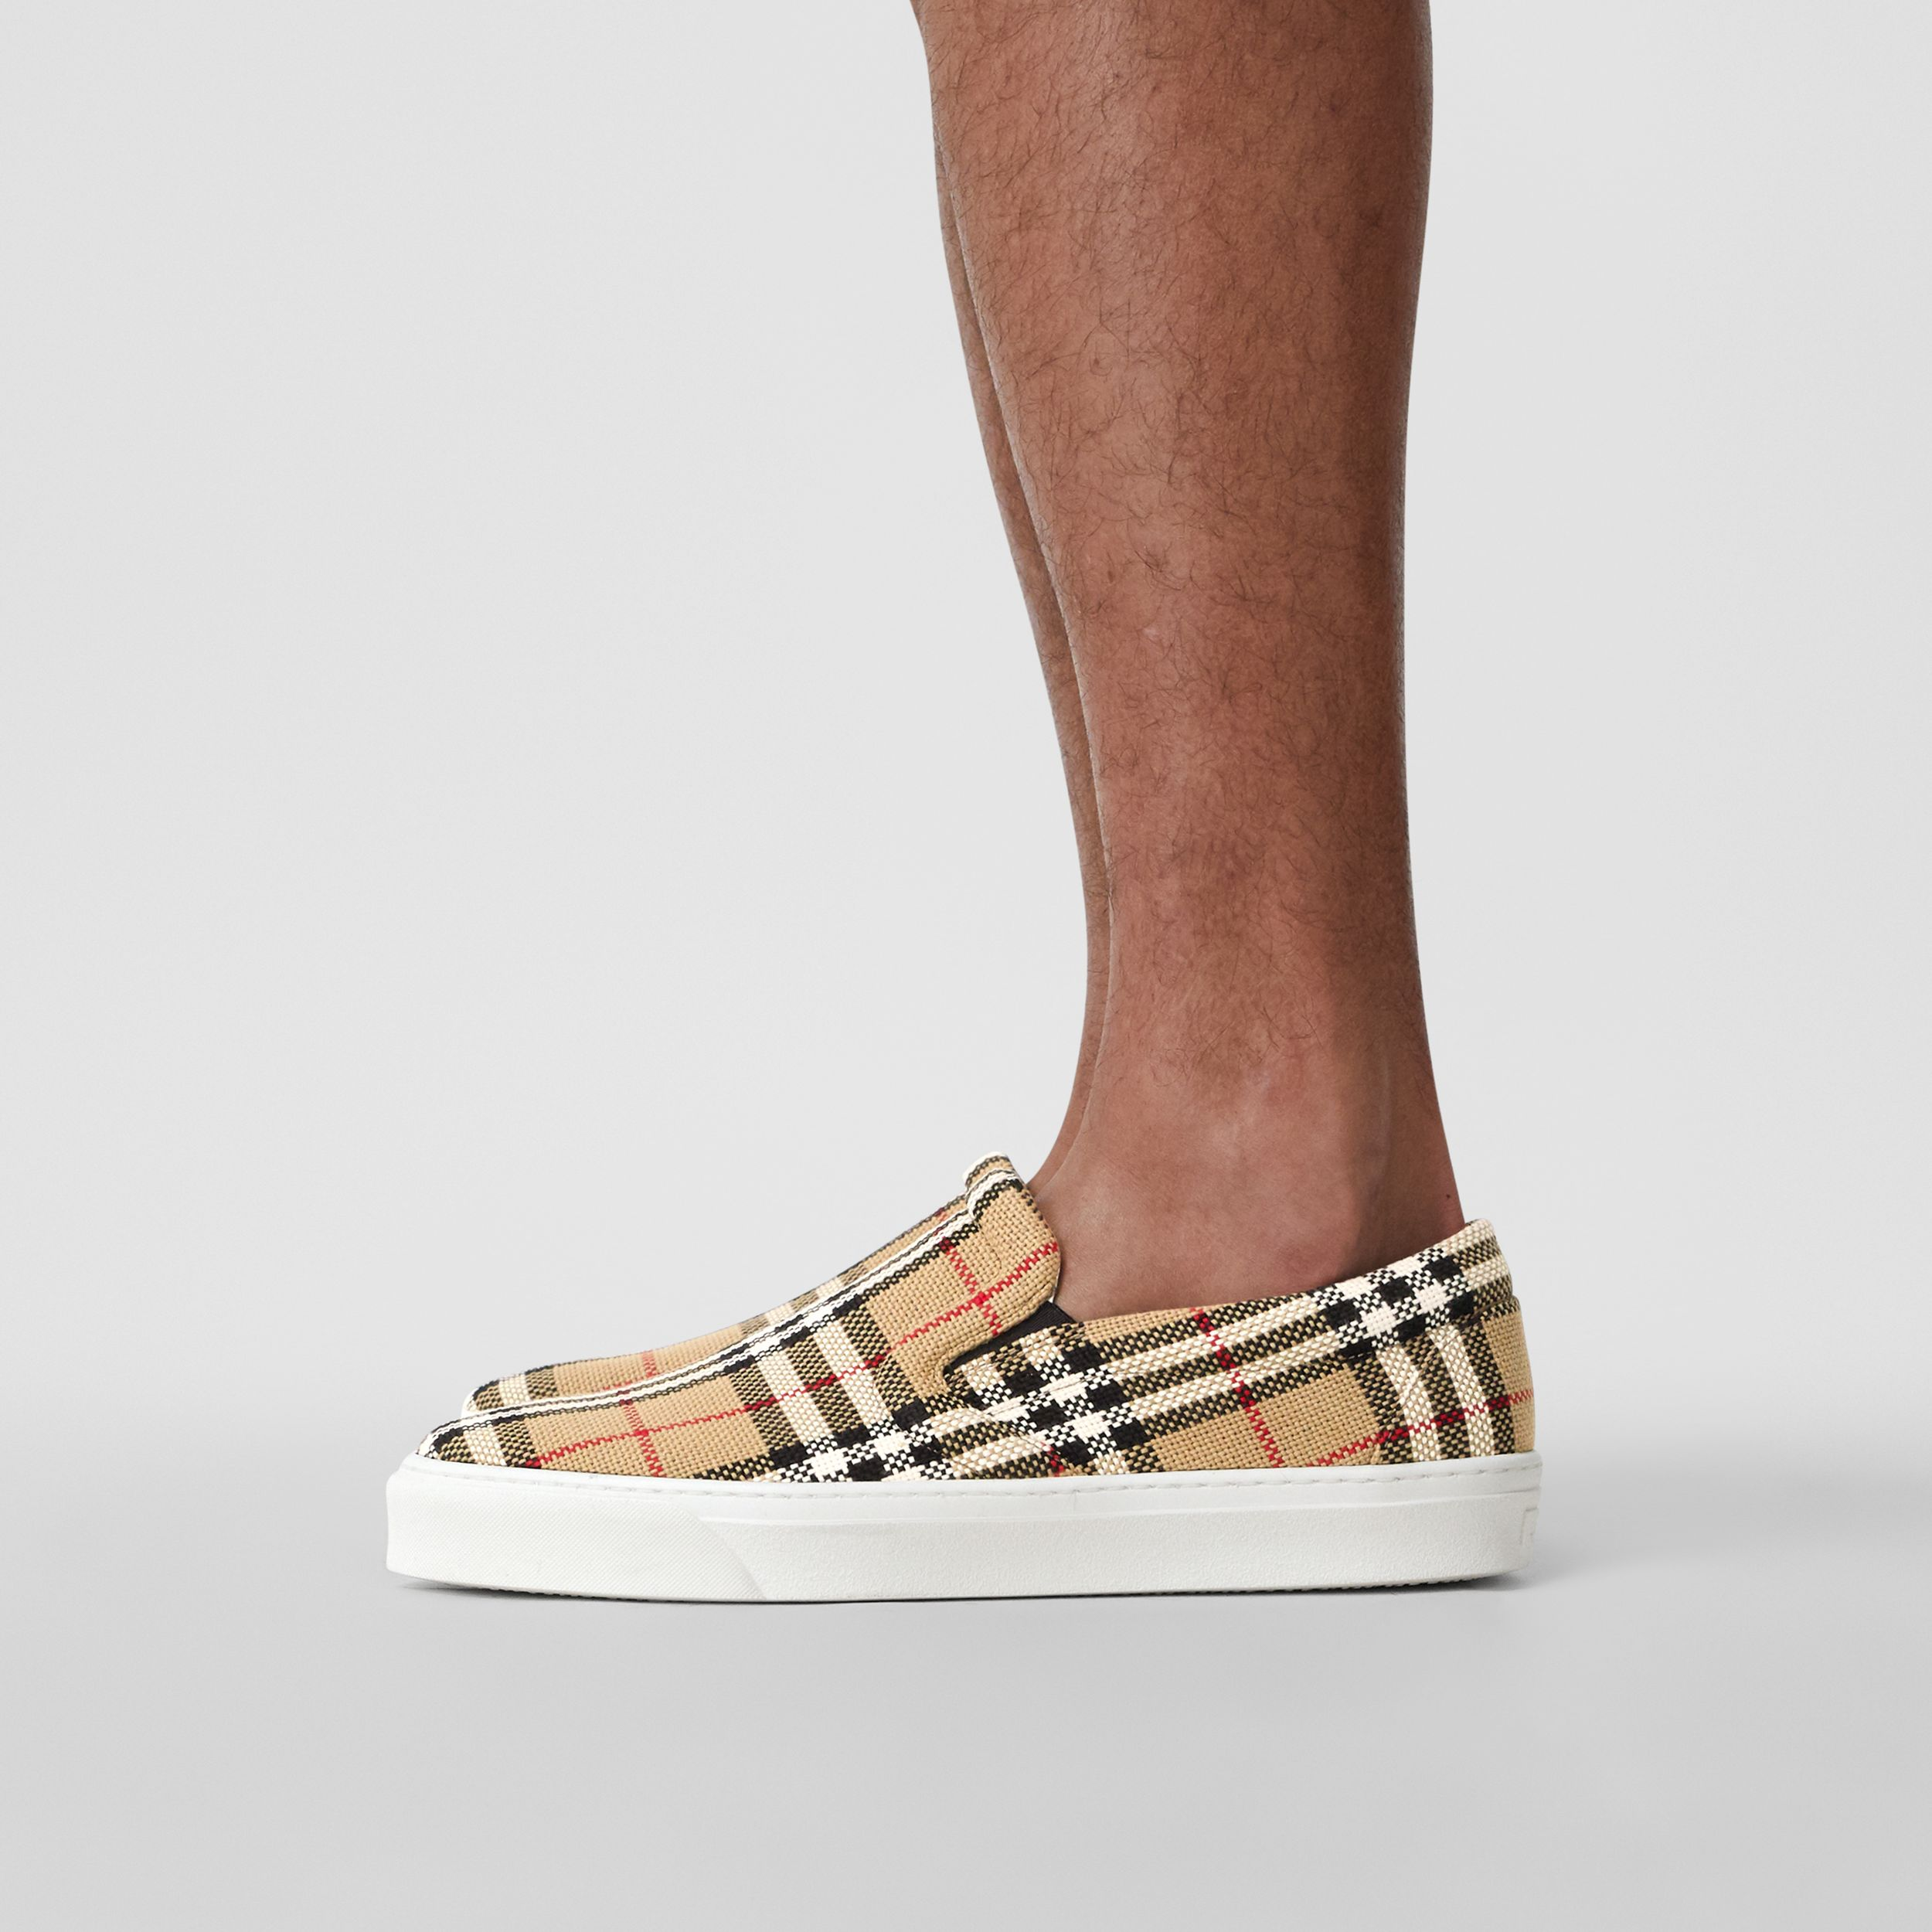 Bio-based Sole Latticed Cotton Slip-on Sneakers in Archive Beige - Men | Burberry United Kingdom - 3